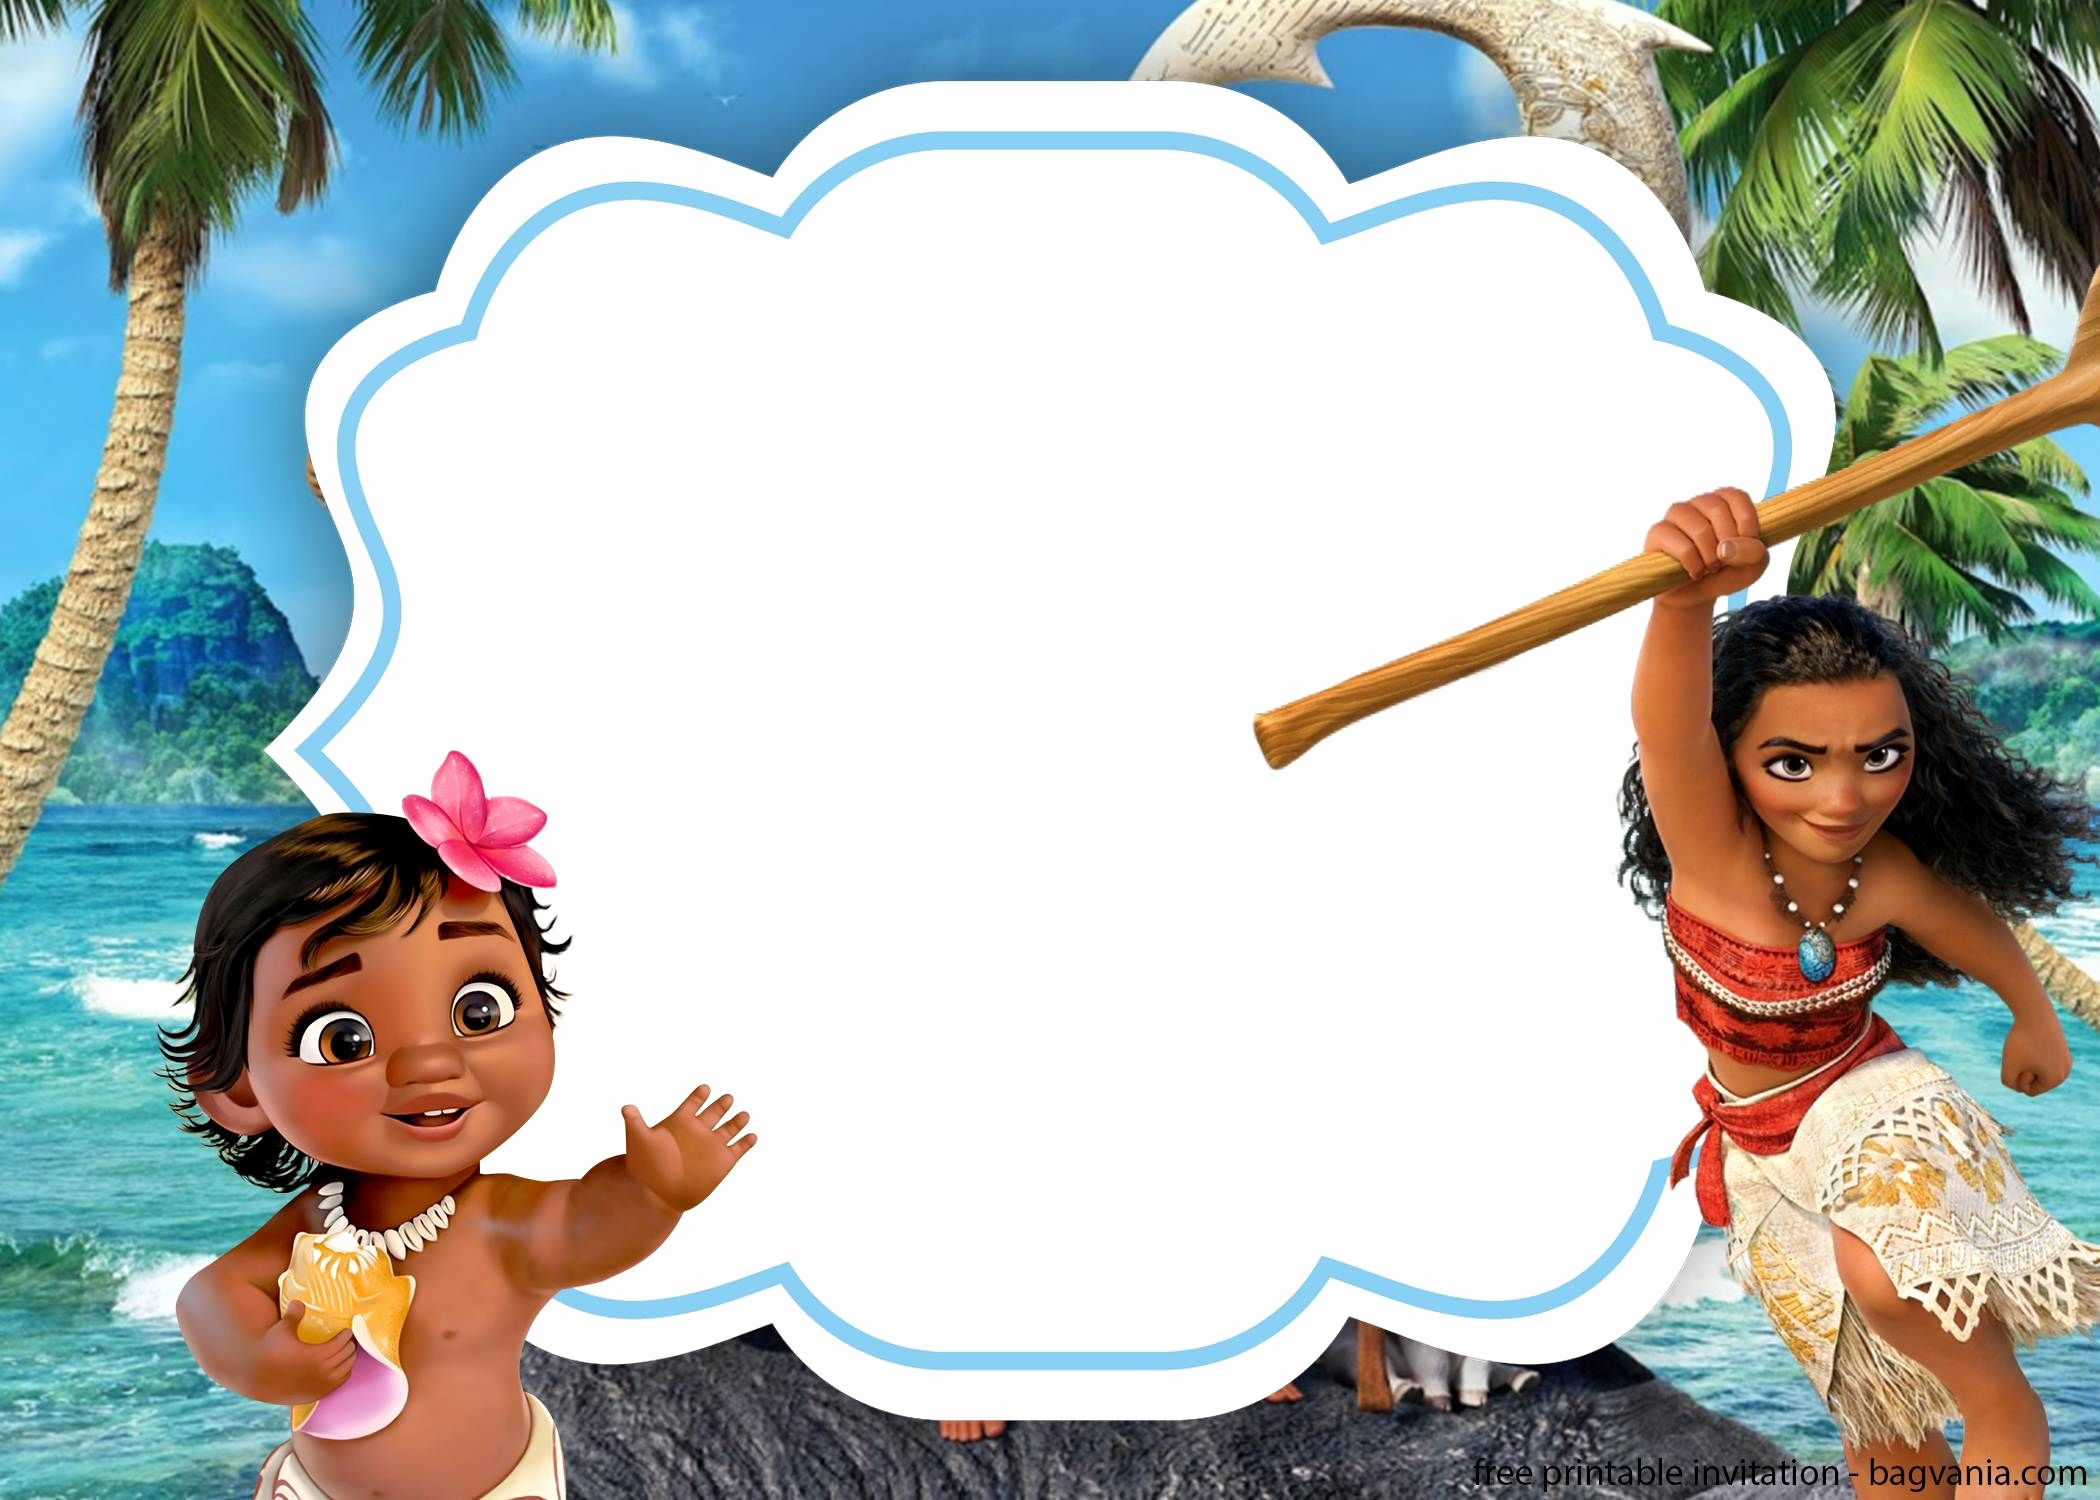 Free Moana Invitation Template Luxury Free Moana with Invitation Template for Kids Beach